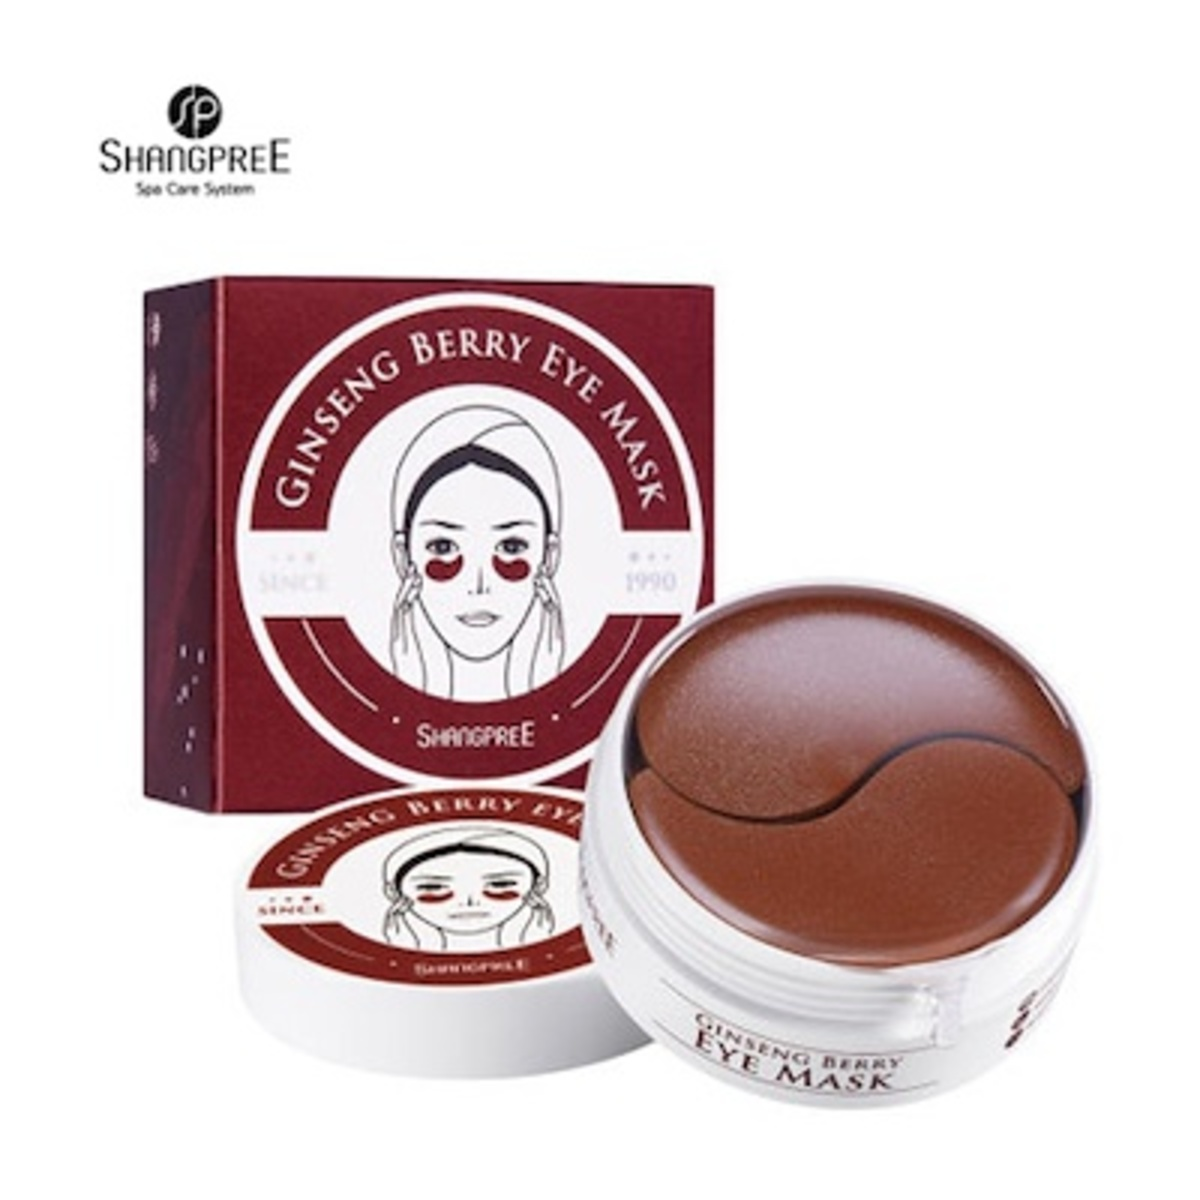 Ginseng Berry Eye Mask 1 pack / 1.4g x 60pcs